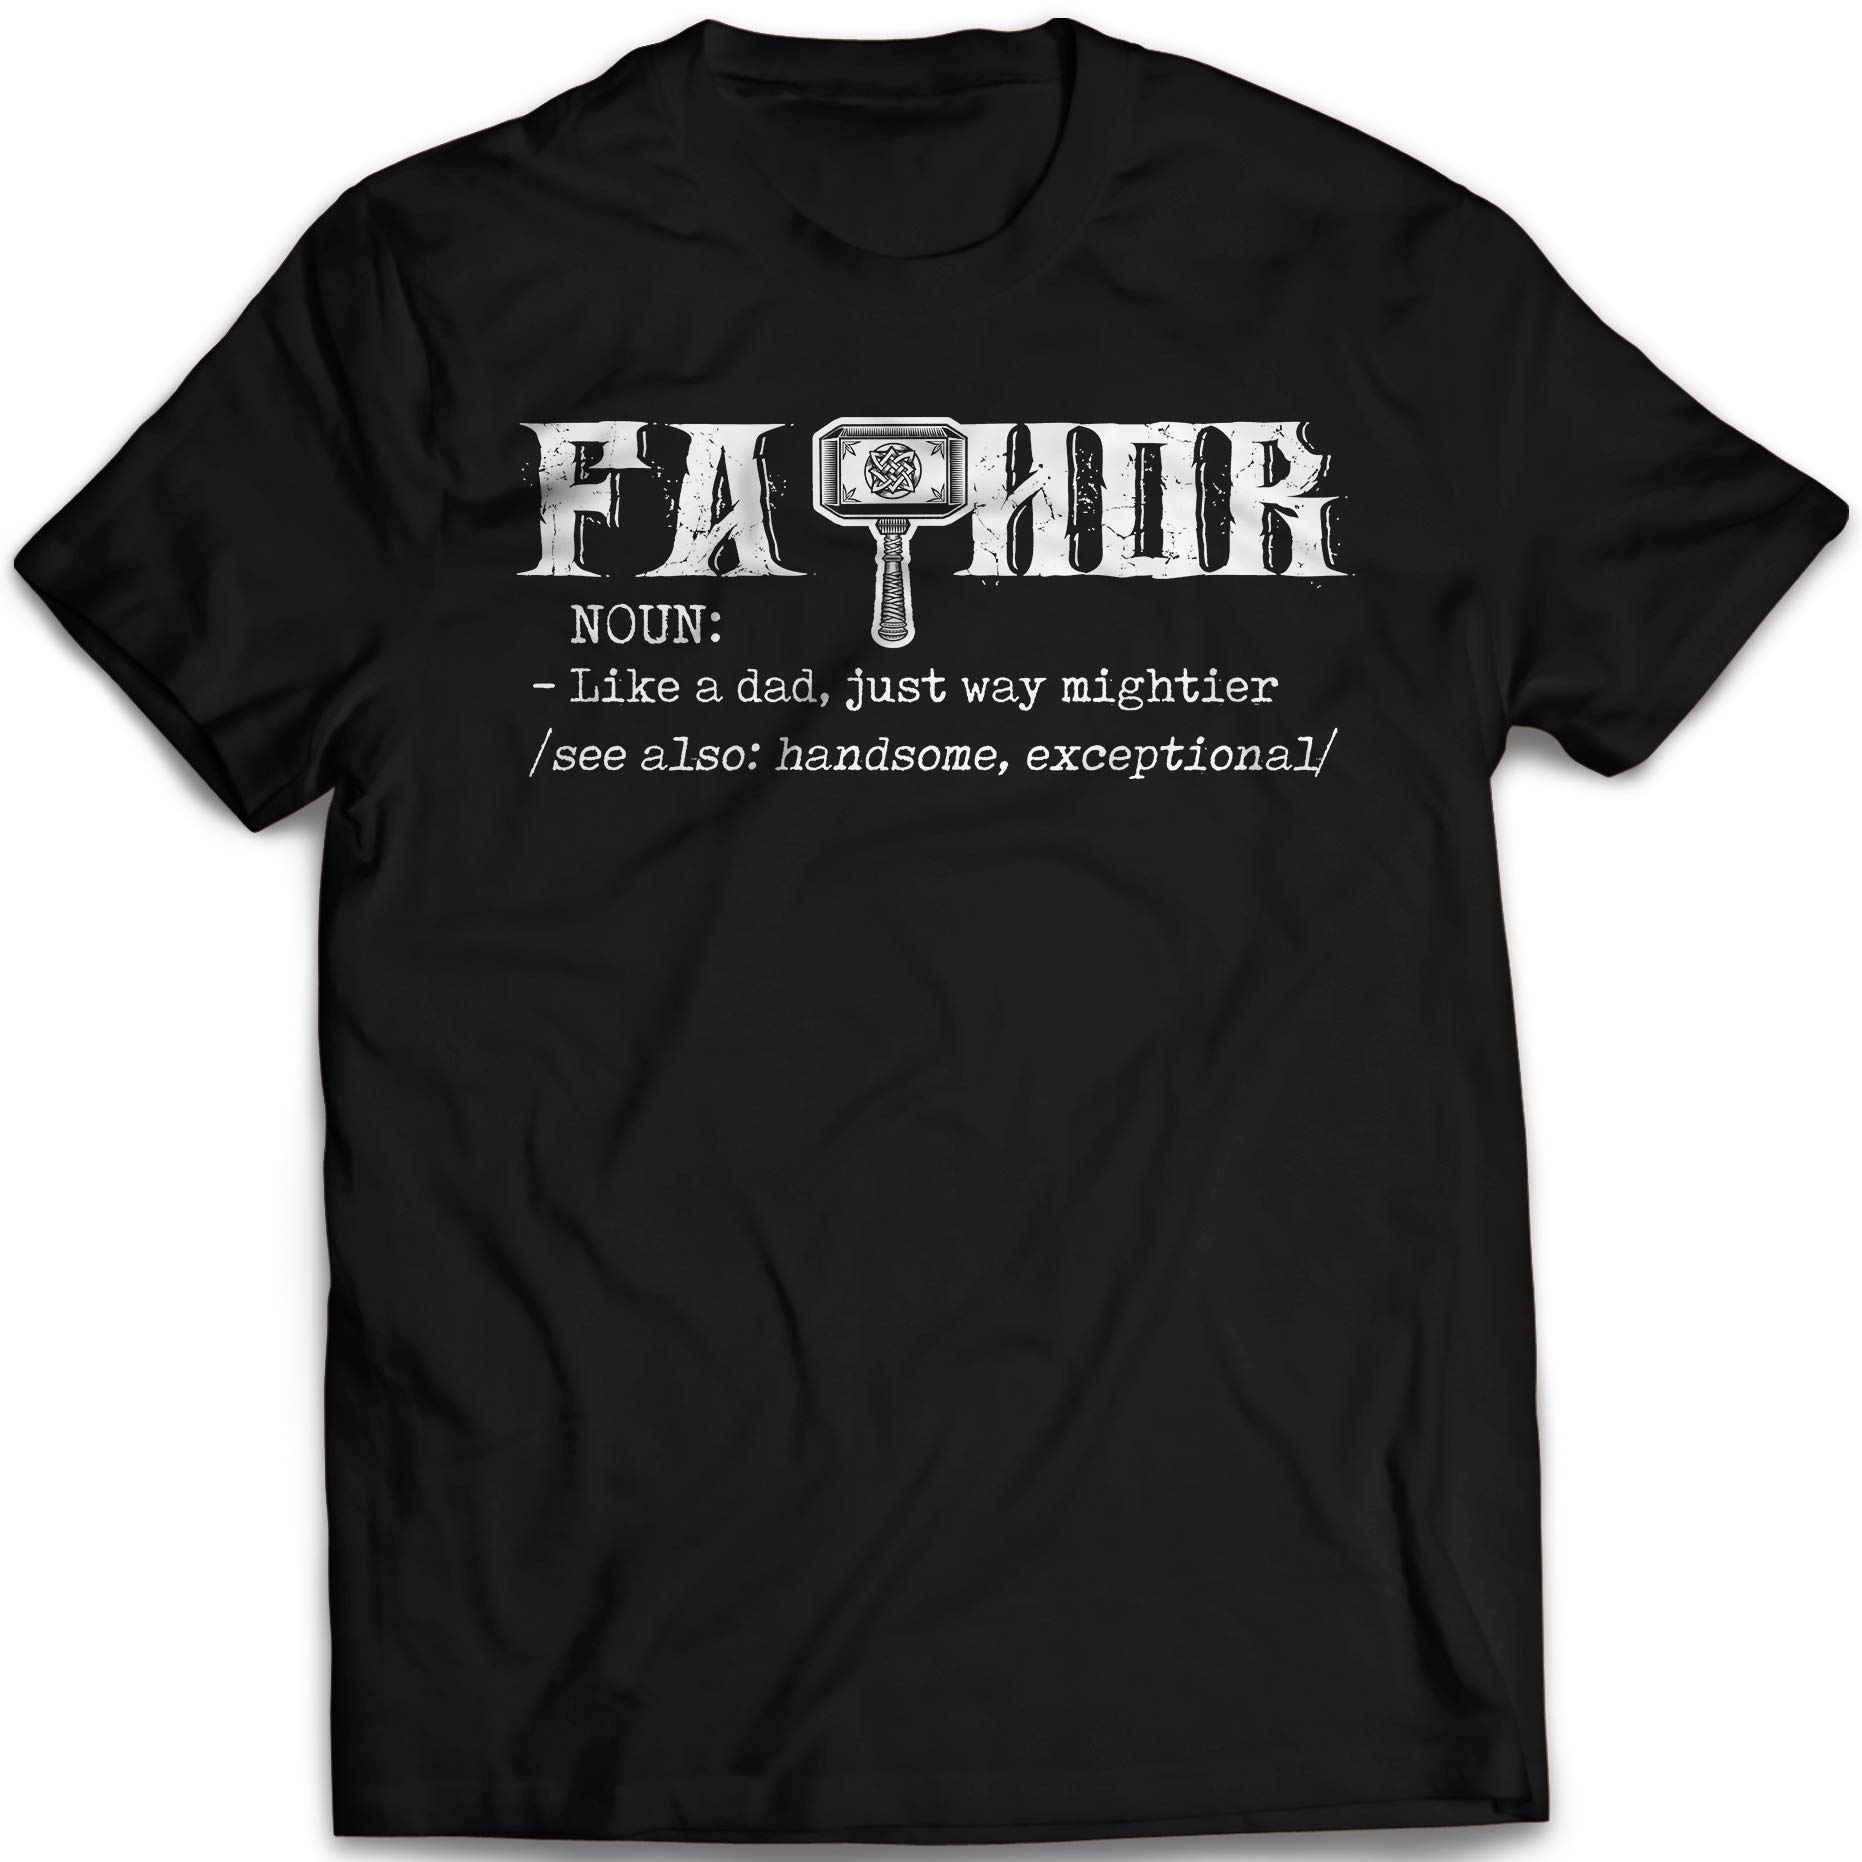 Way Cooler Dad Fa Shirts Gift For Father S Day Customized Handmade T Shirt Long Sle